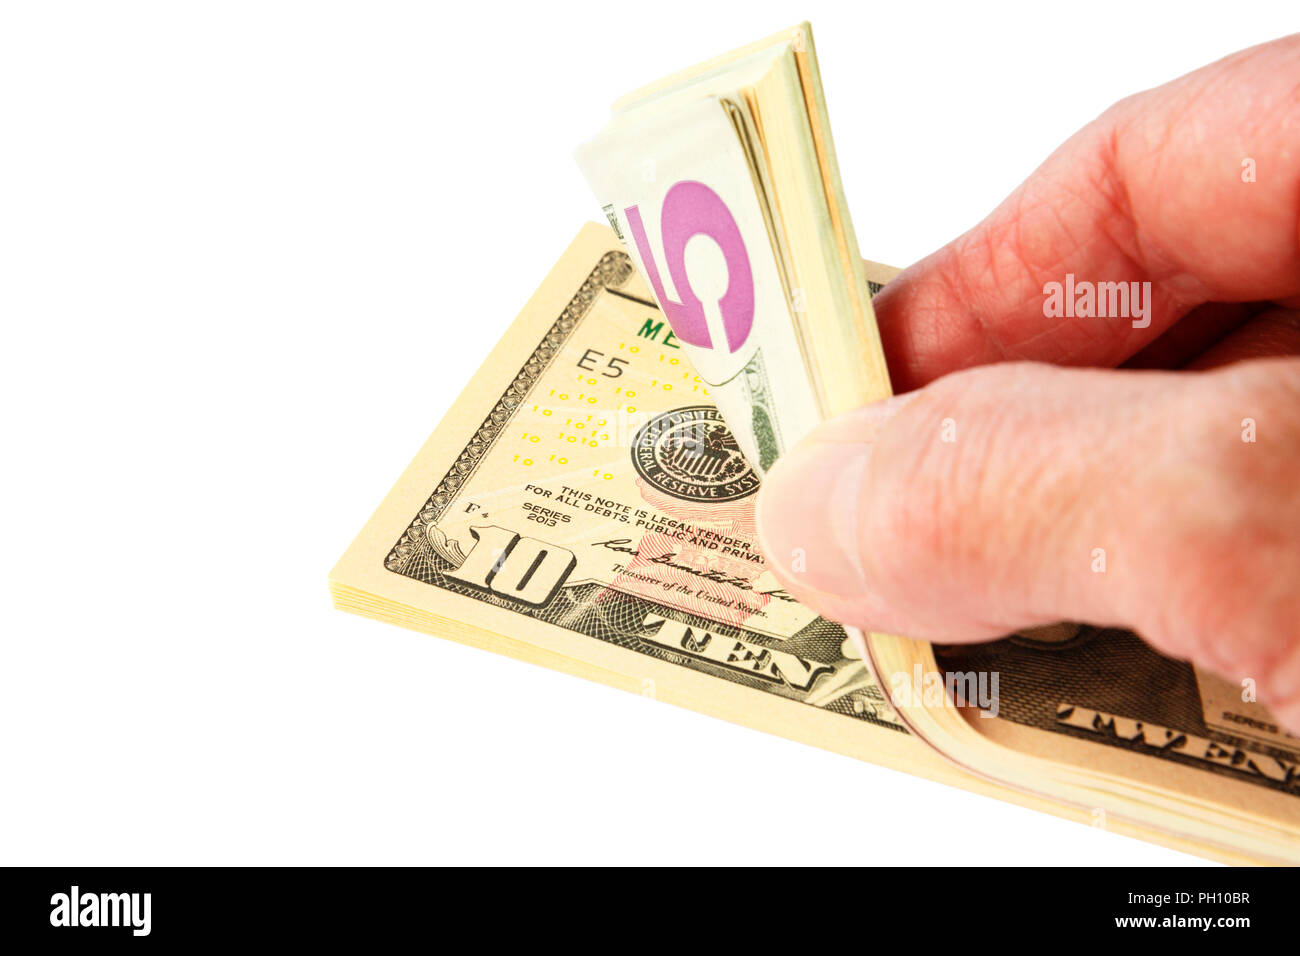 A senior female person's hand counting a pile wodge of American currency money in US dollars dollar bills notes isolated on a white background. USA - Stock Image